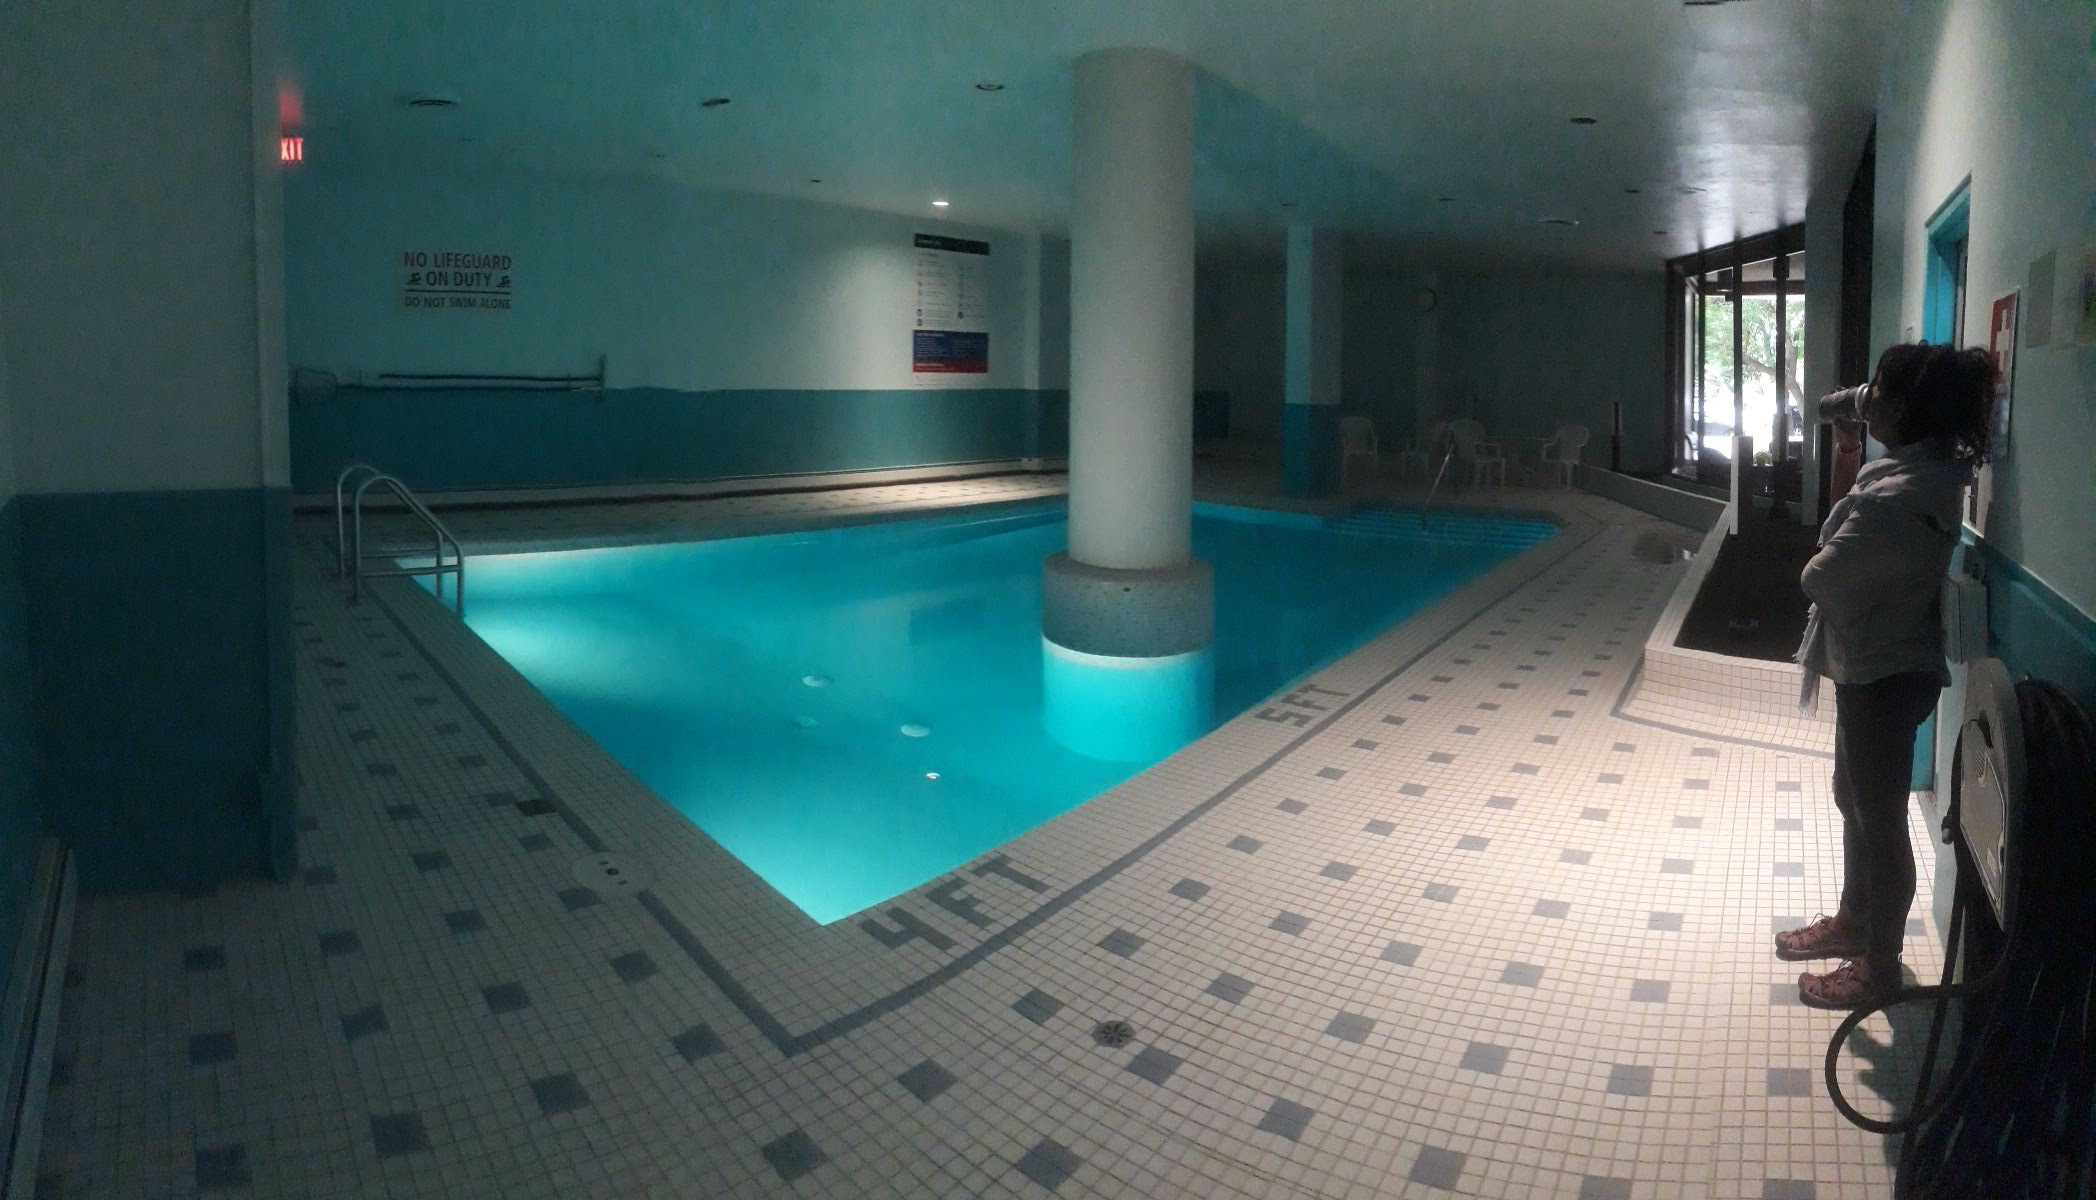 Our new condo building even has a beautiful indoor saltwater pool to keep us happy through the long winter.